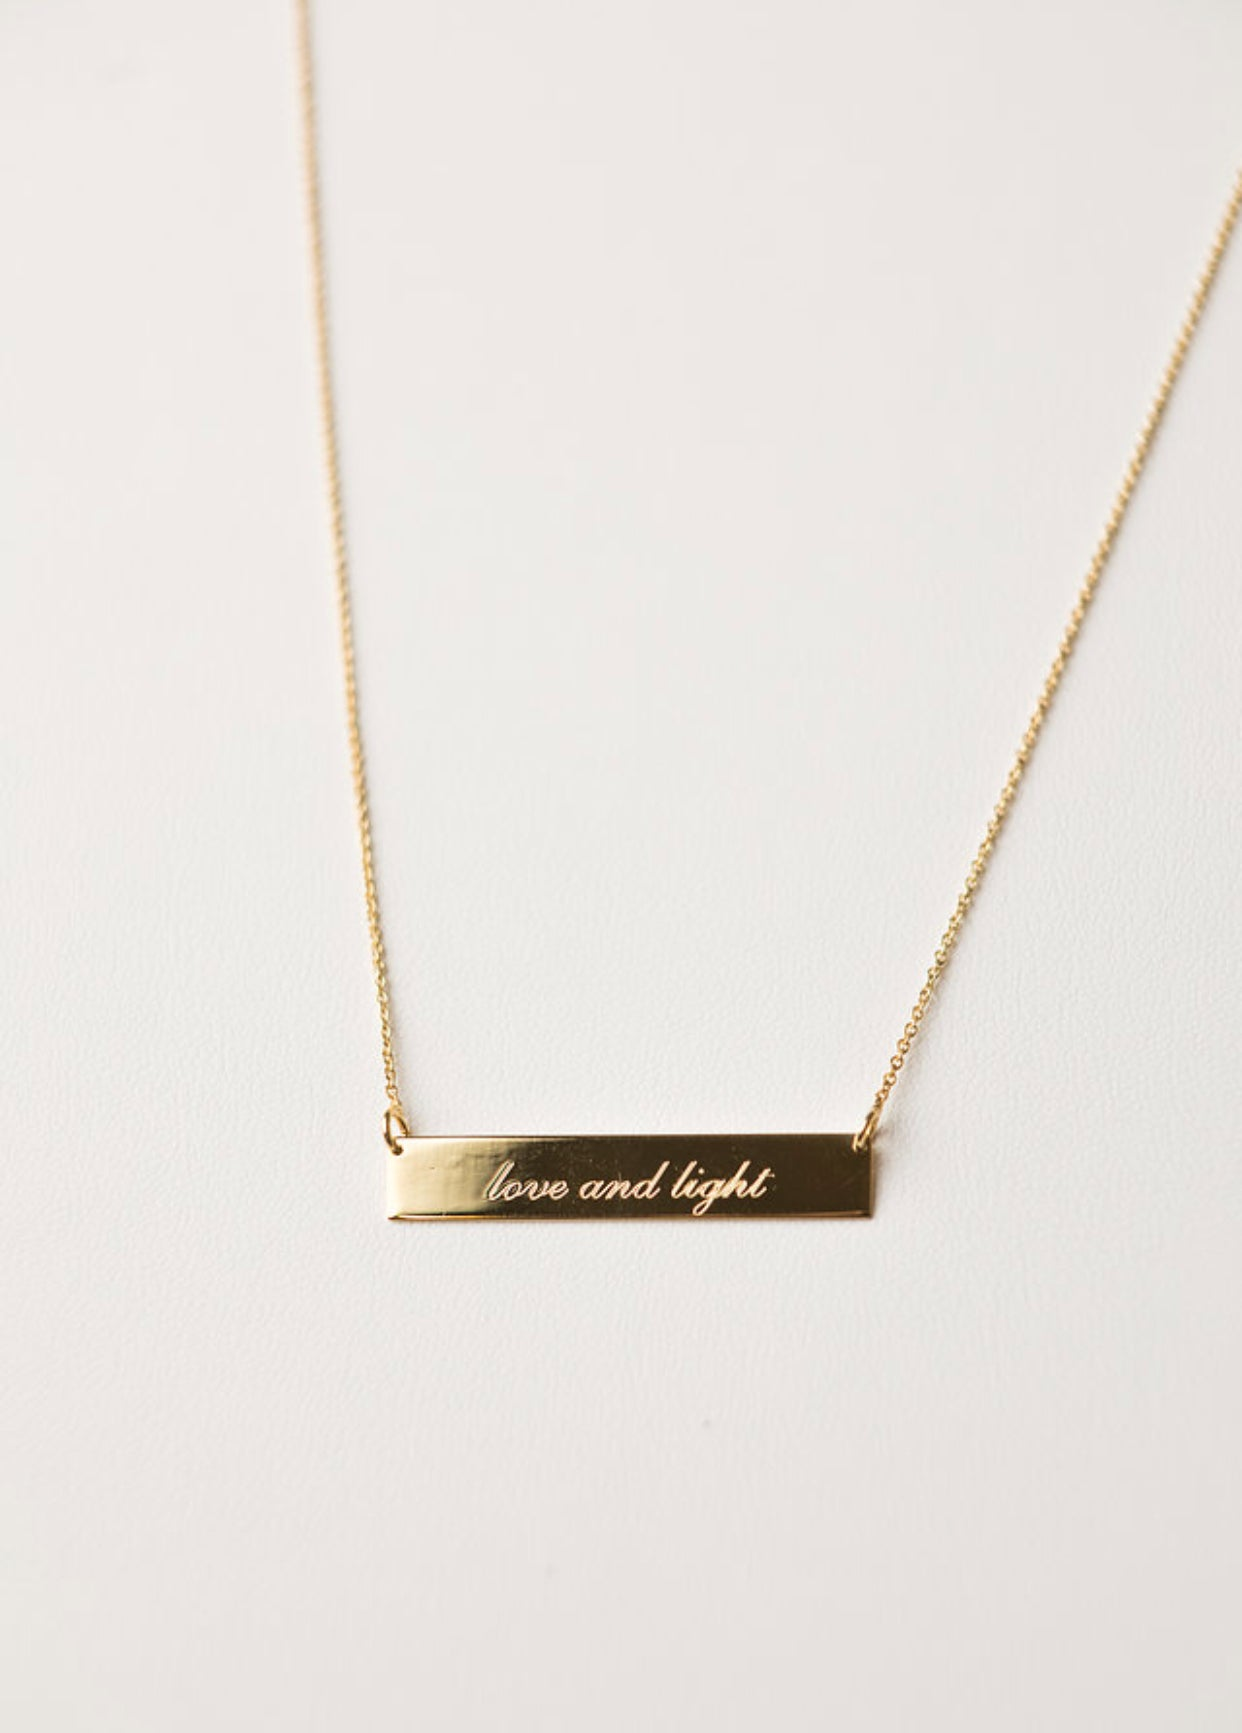 style initials mother com s every jewelry or can meaningful personal people be mothers gift at these engraved with p names necklaces carrie guide hoffman dates necklace day price